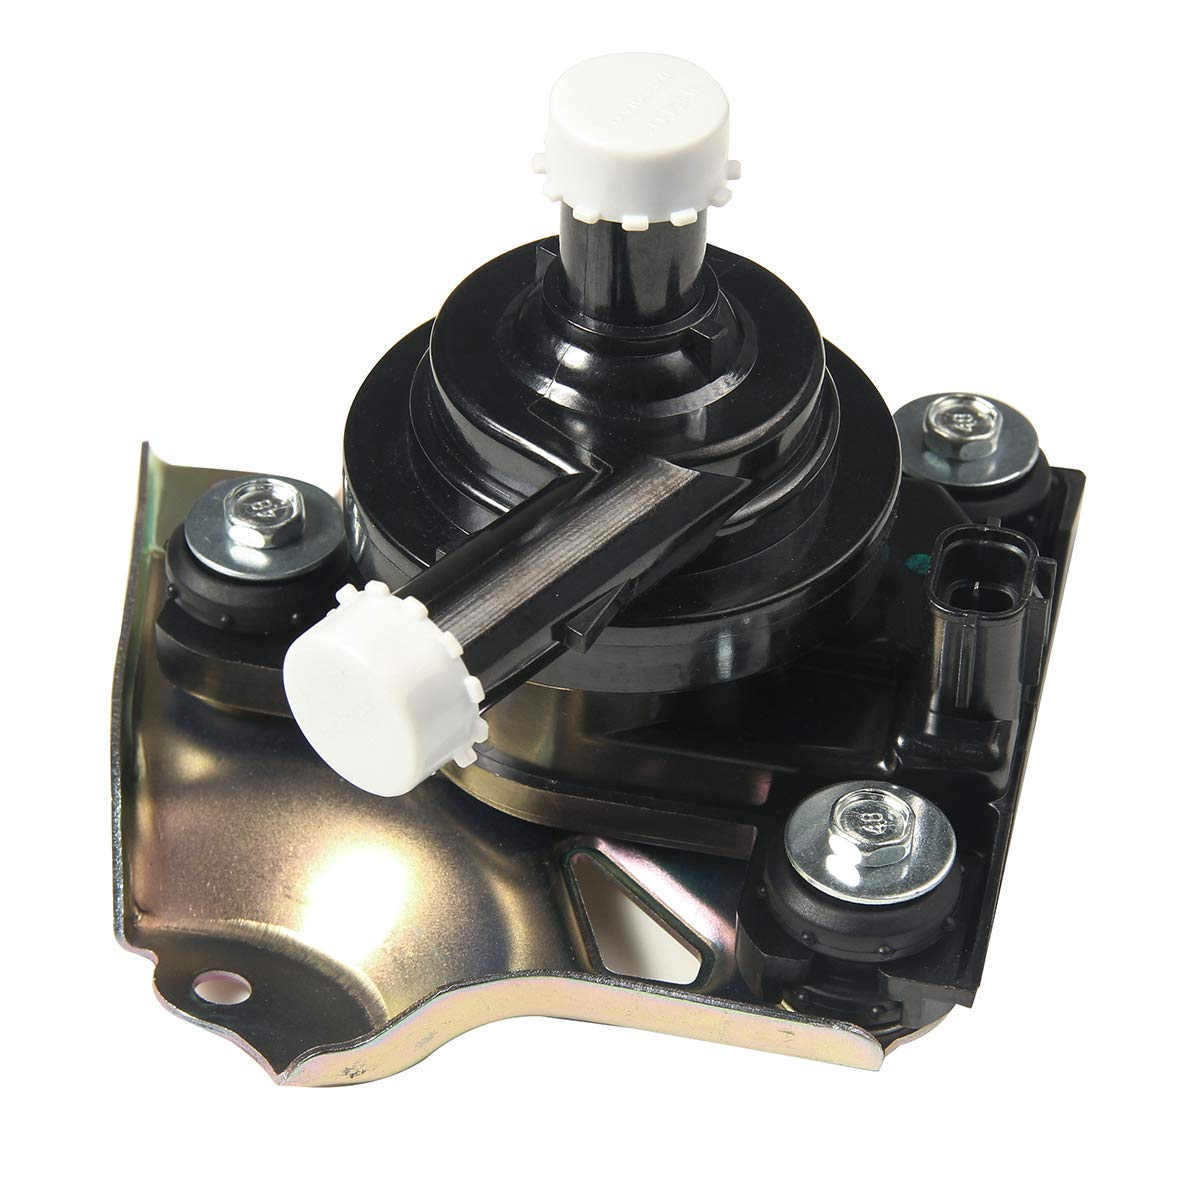 G9020-47031 Engine Coolant Inverter Electric Water Pump Assembly 12V with  Bracket   for 2004-2009 Toyota Prius Hybrid 1 5L   #G9020-47031, 04000-32528